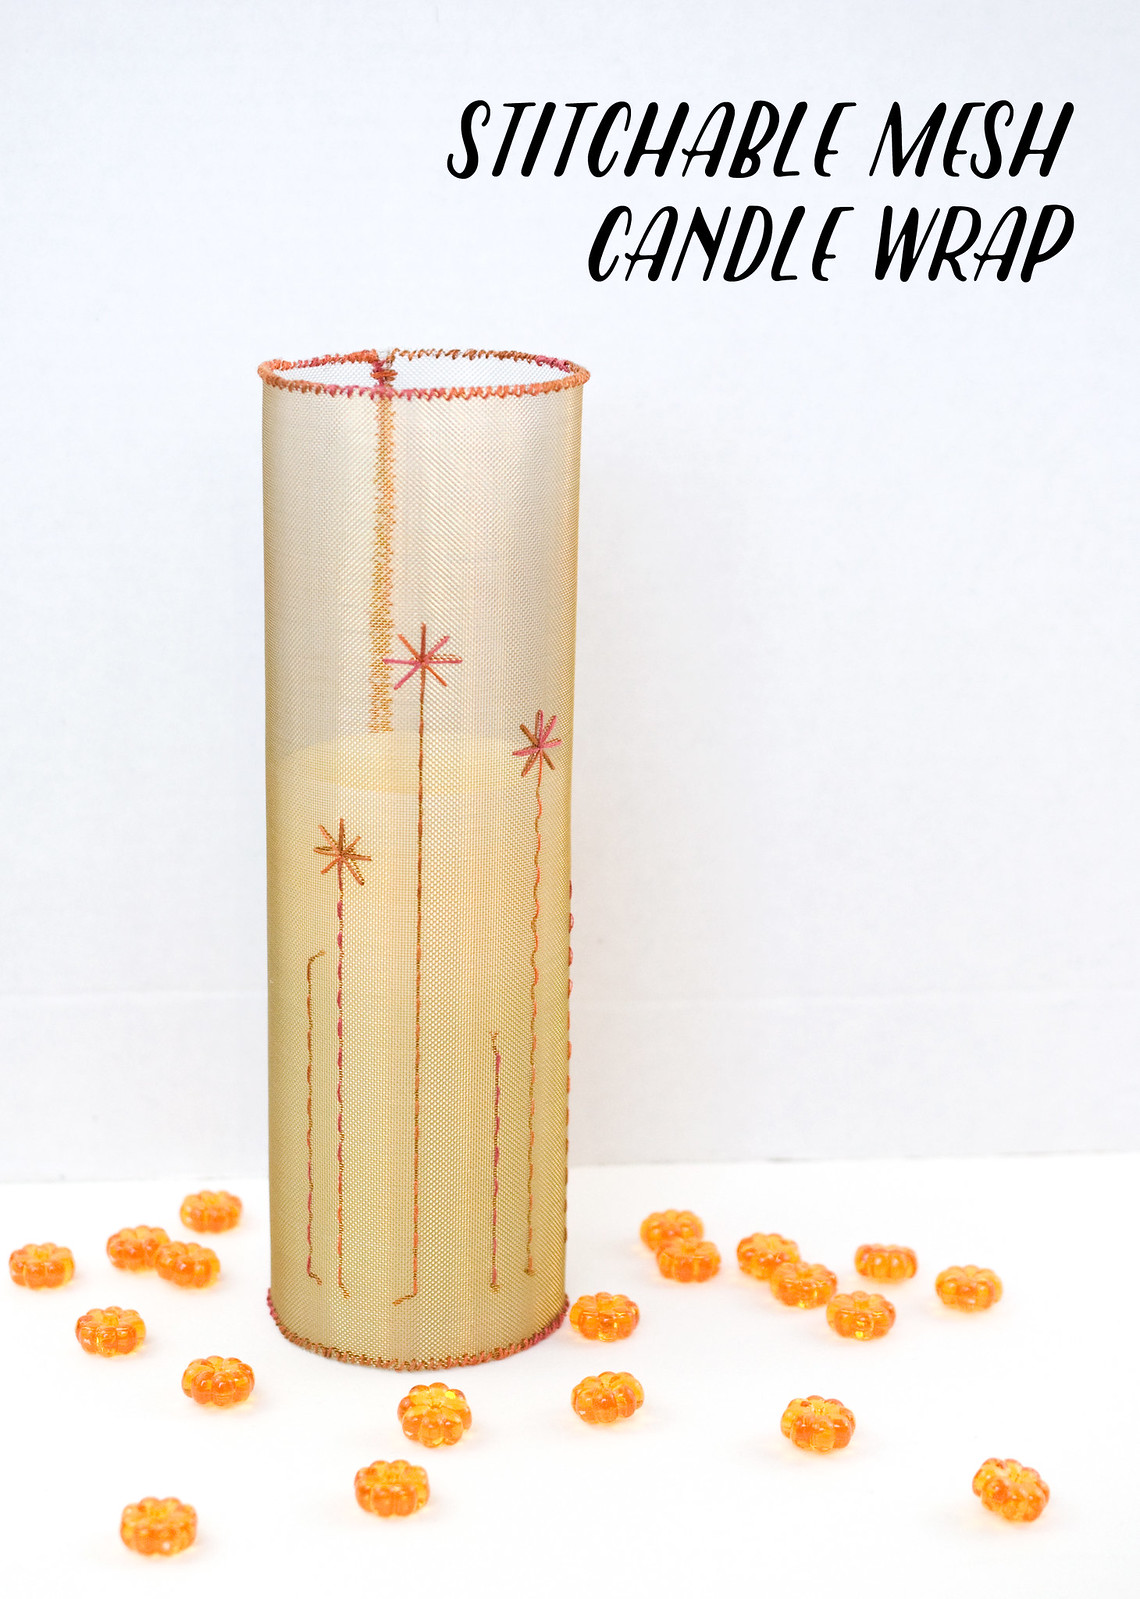 Stitchable Mesh Candle Wrap